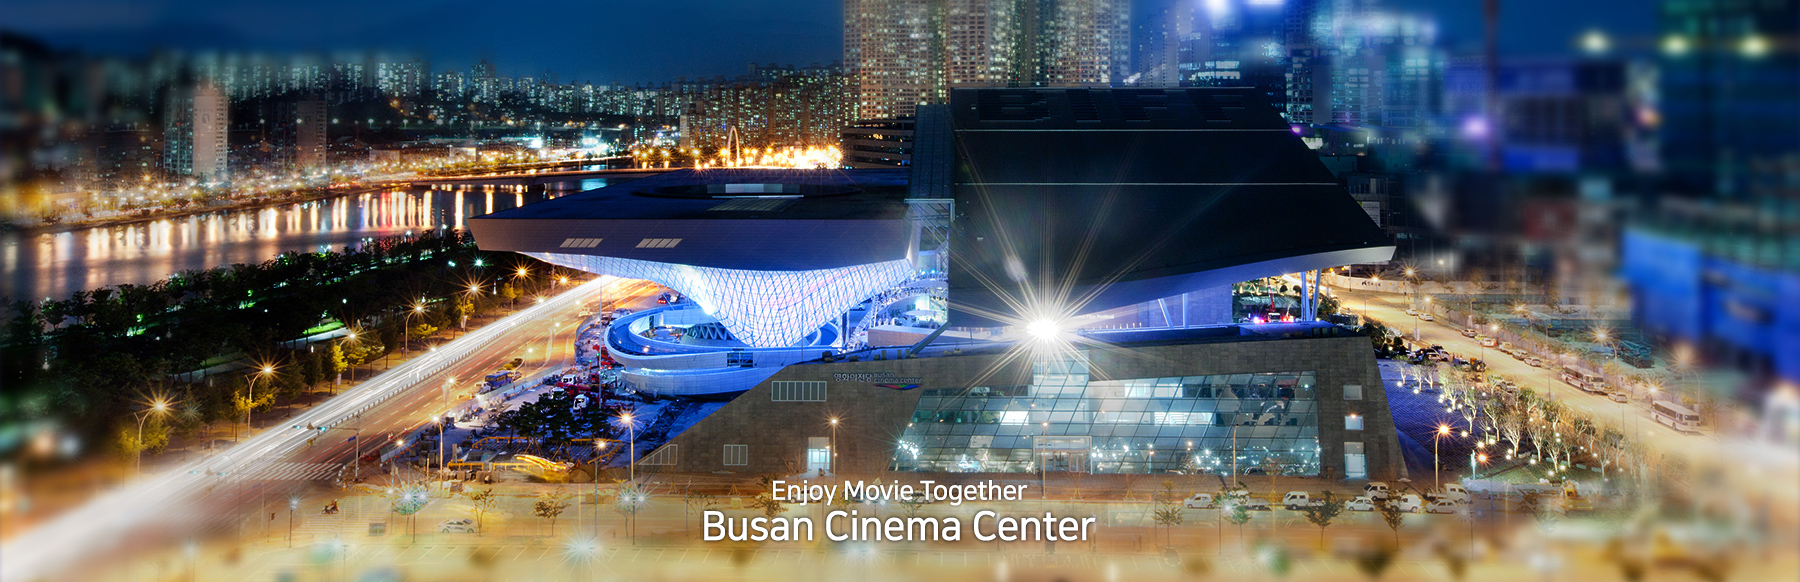 Enjoy Movie Together Busan Cinema Center